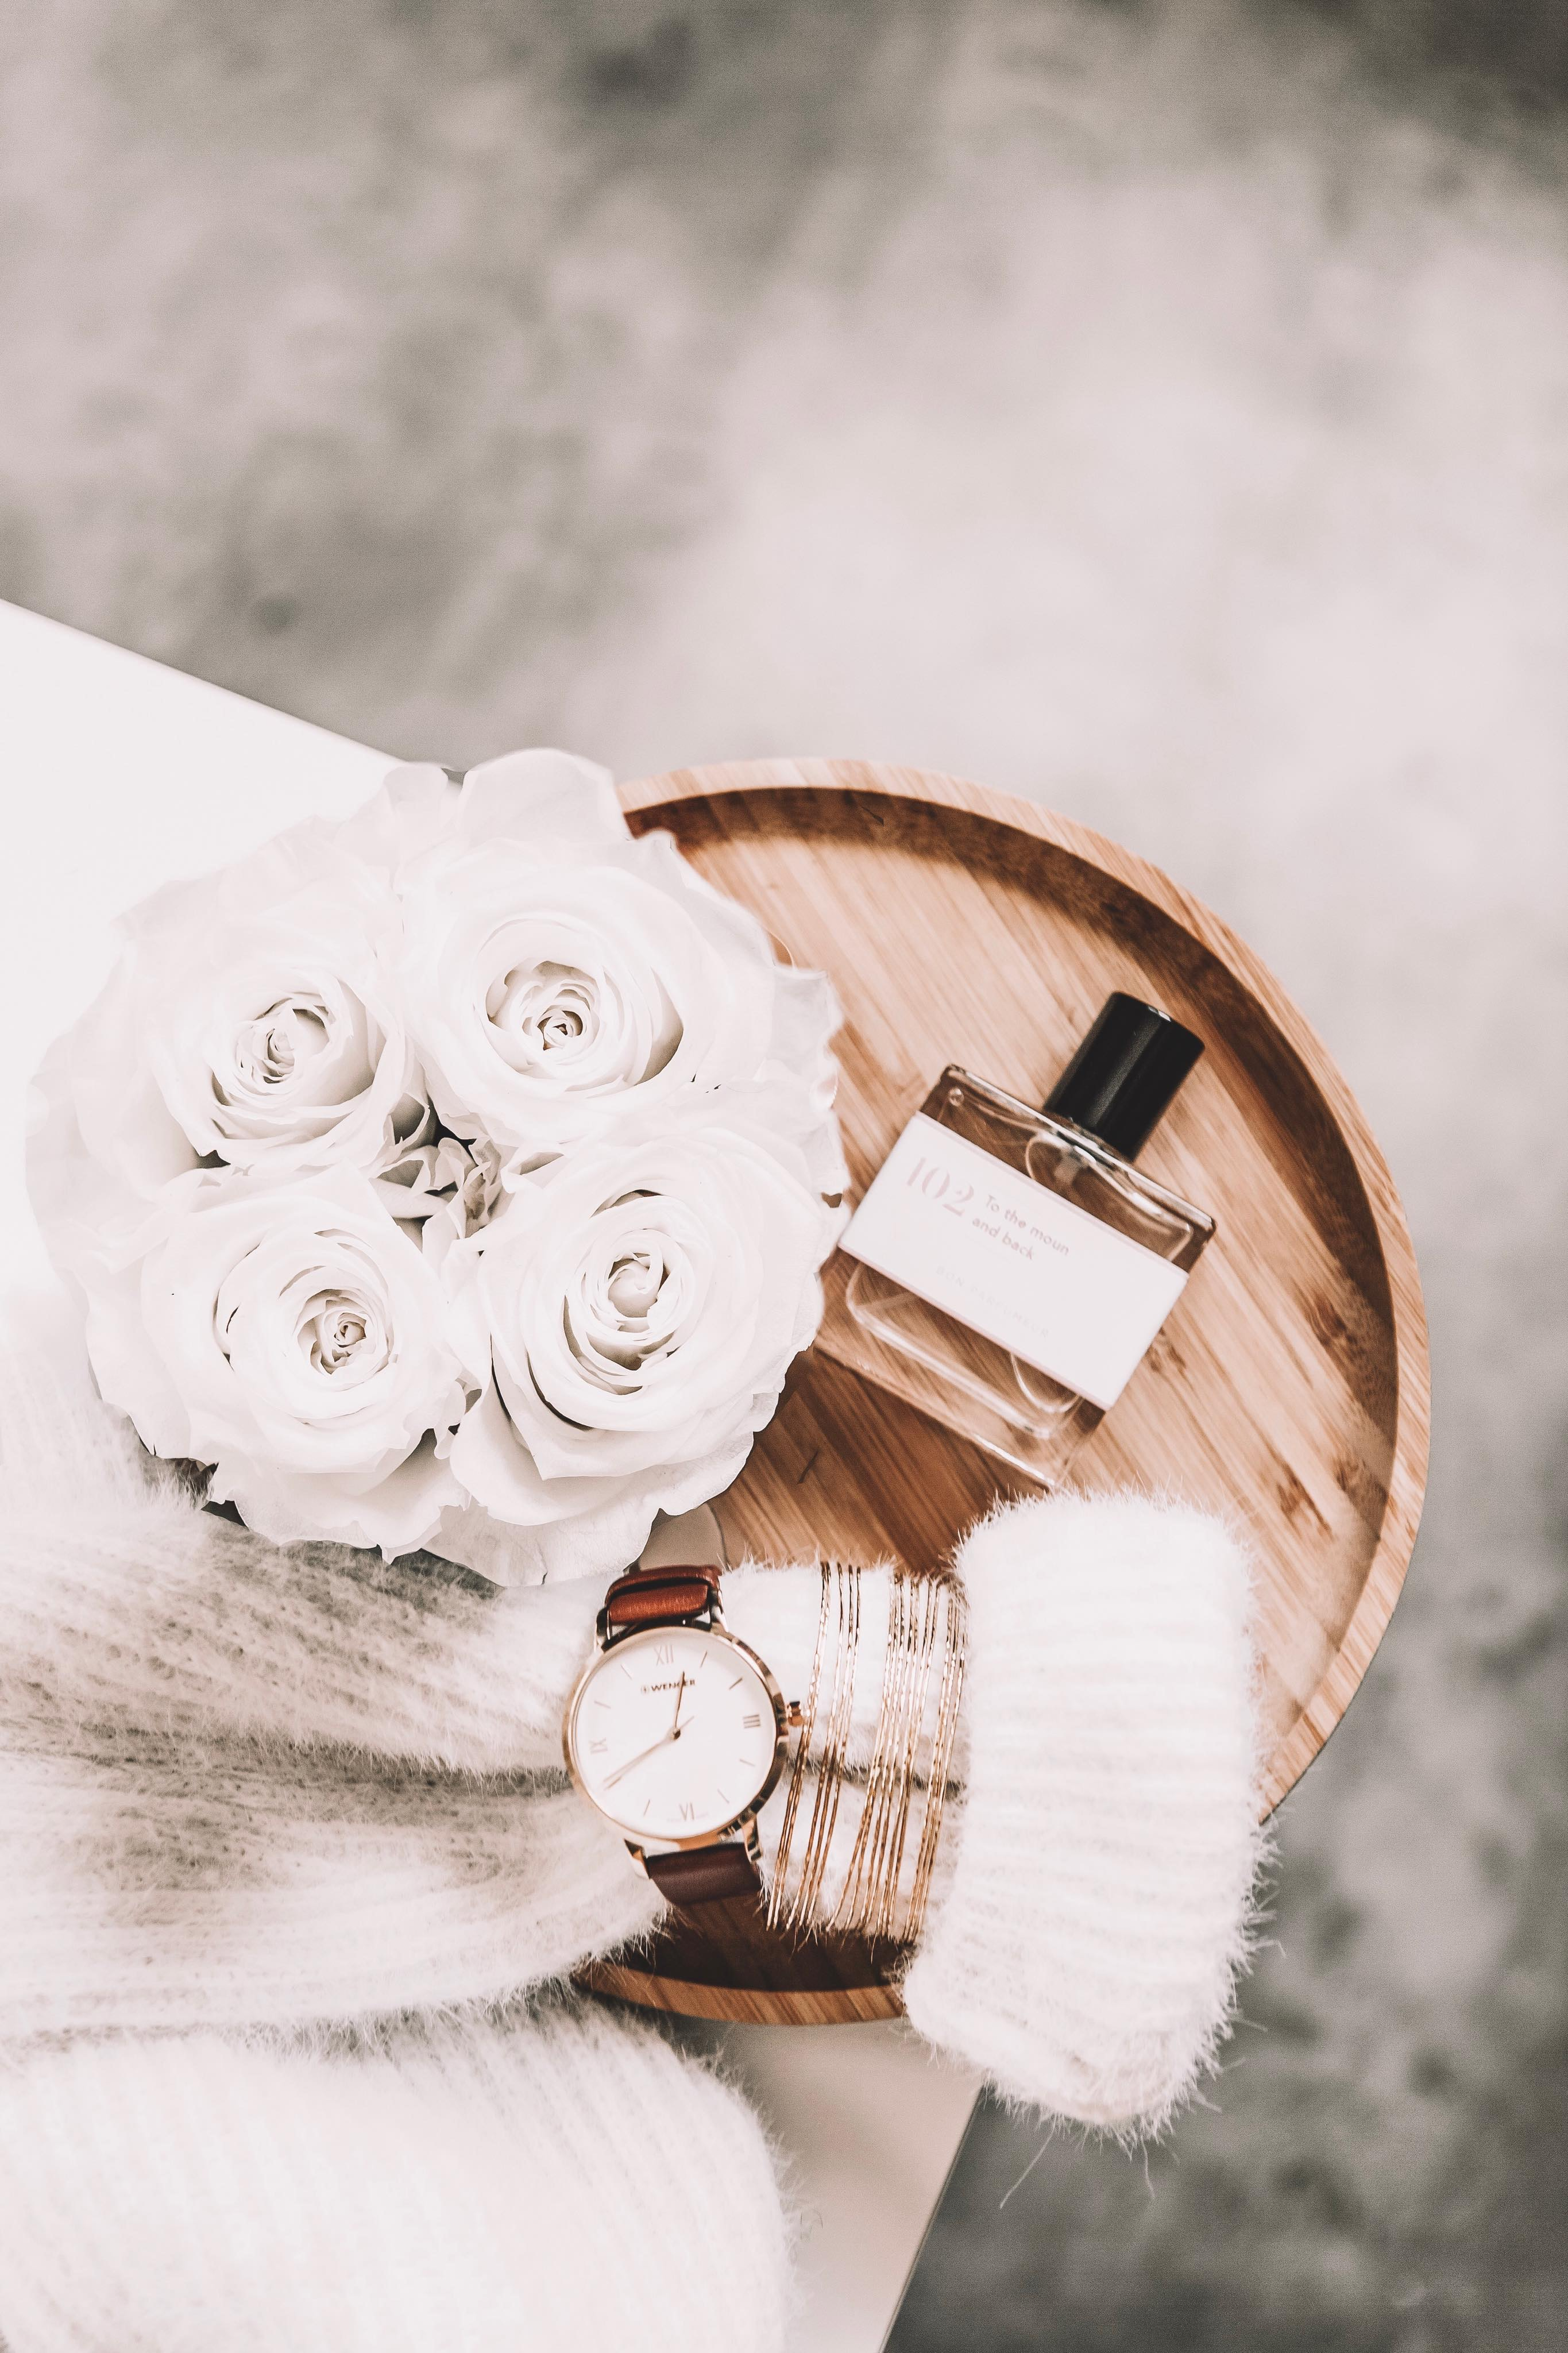 flat lay photography of fragrance bottle and bouquet of white flowers on round tray